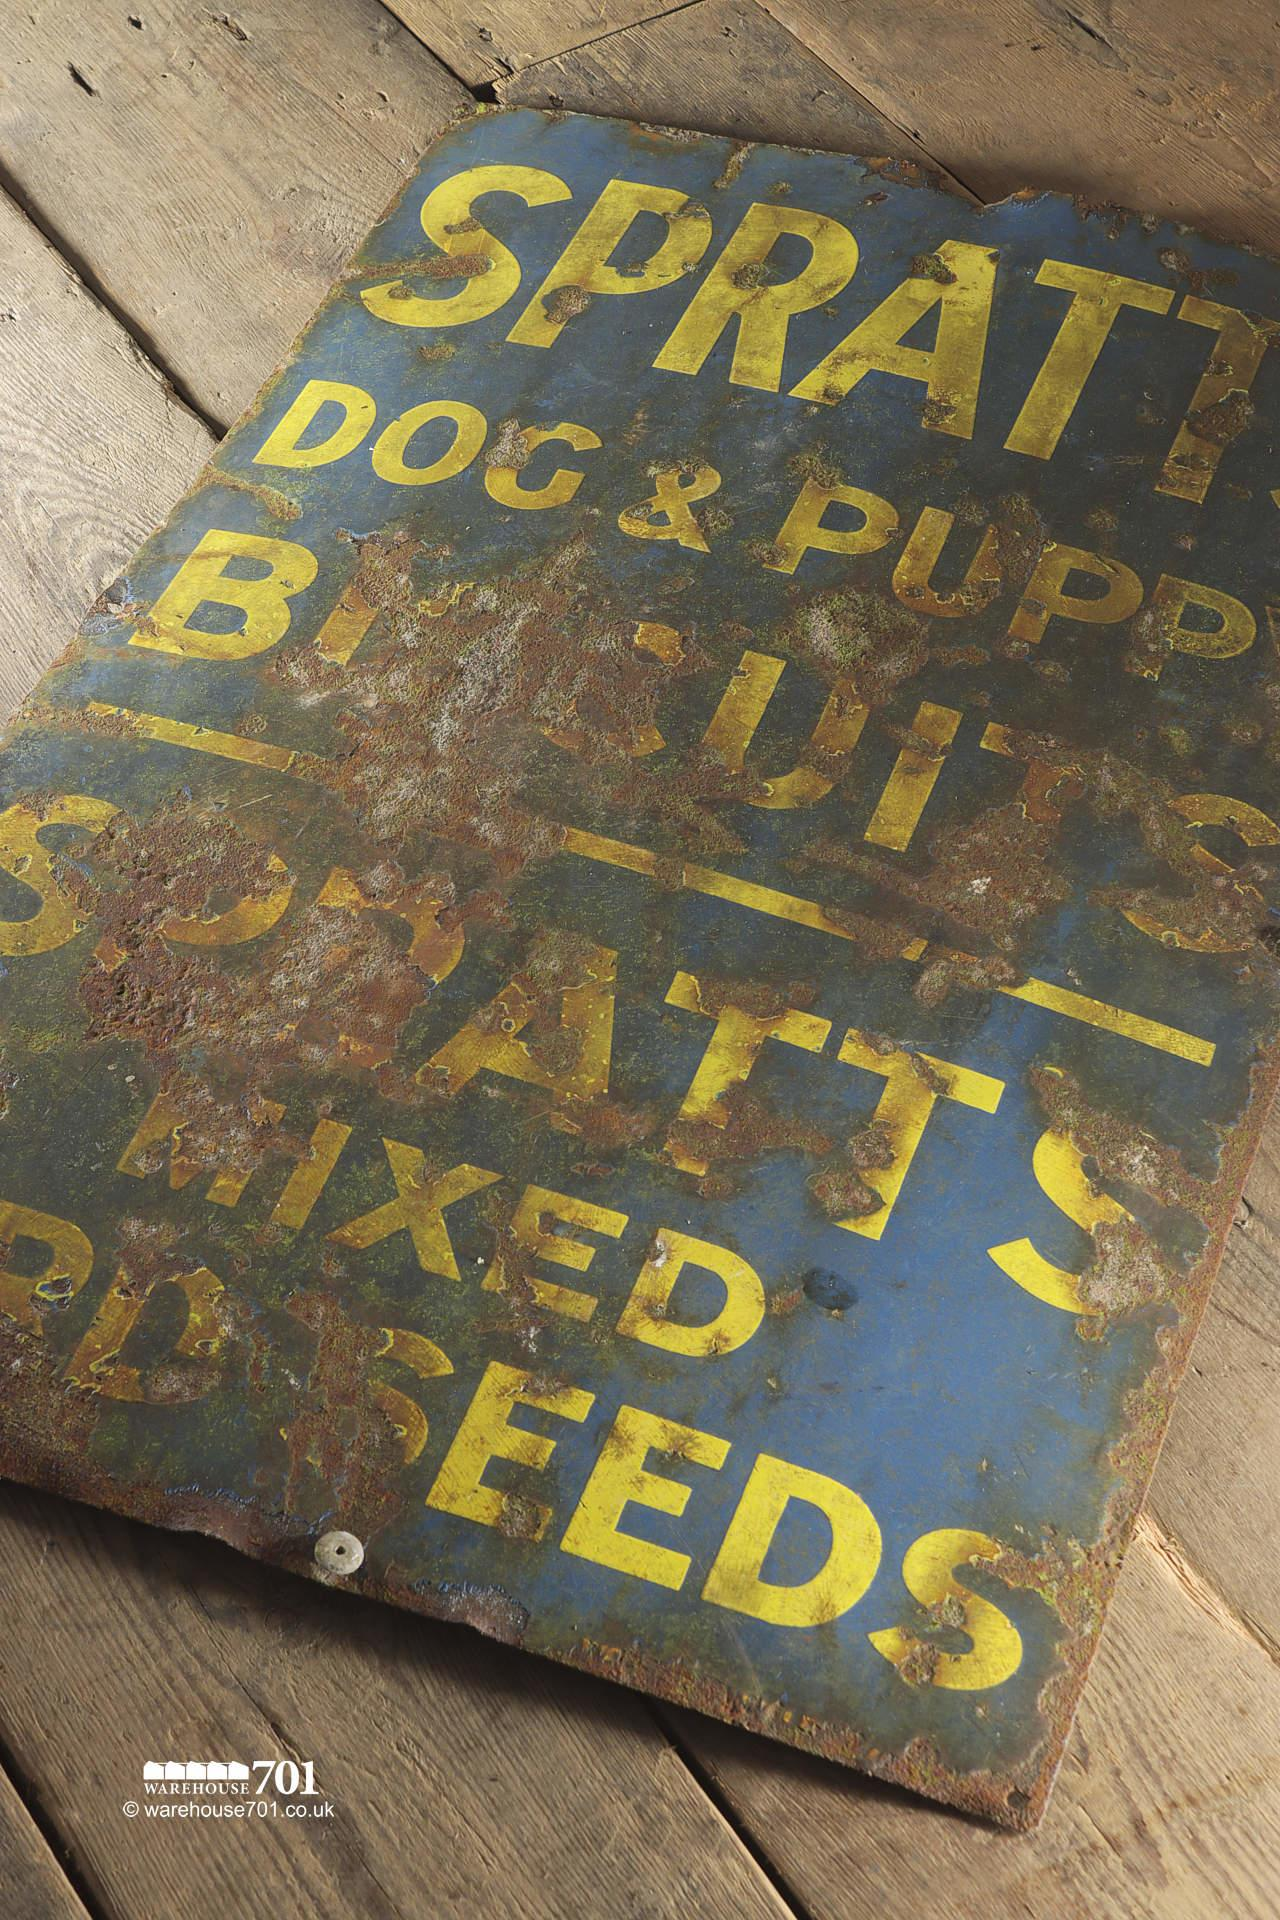 Salvaged Metal Spratts Dog and Puppy Enamel Sign #2